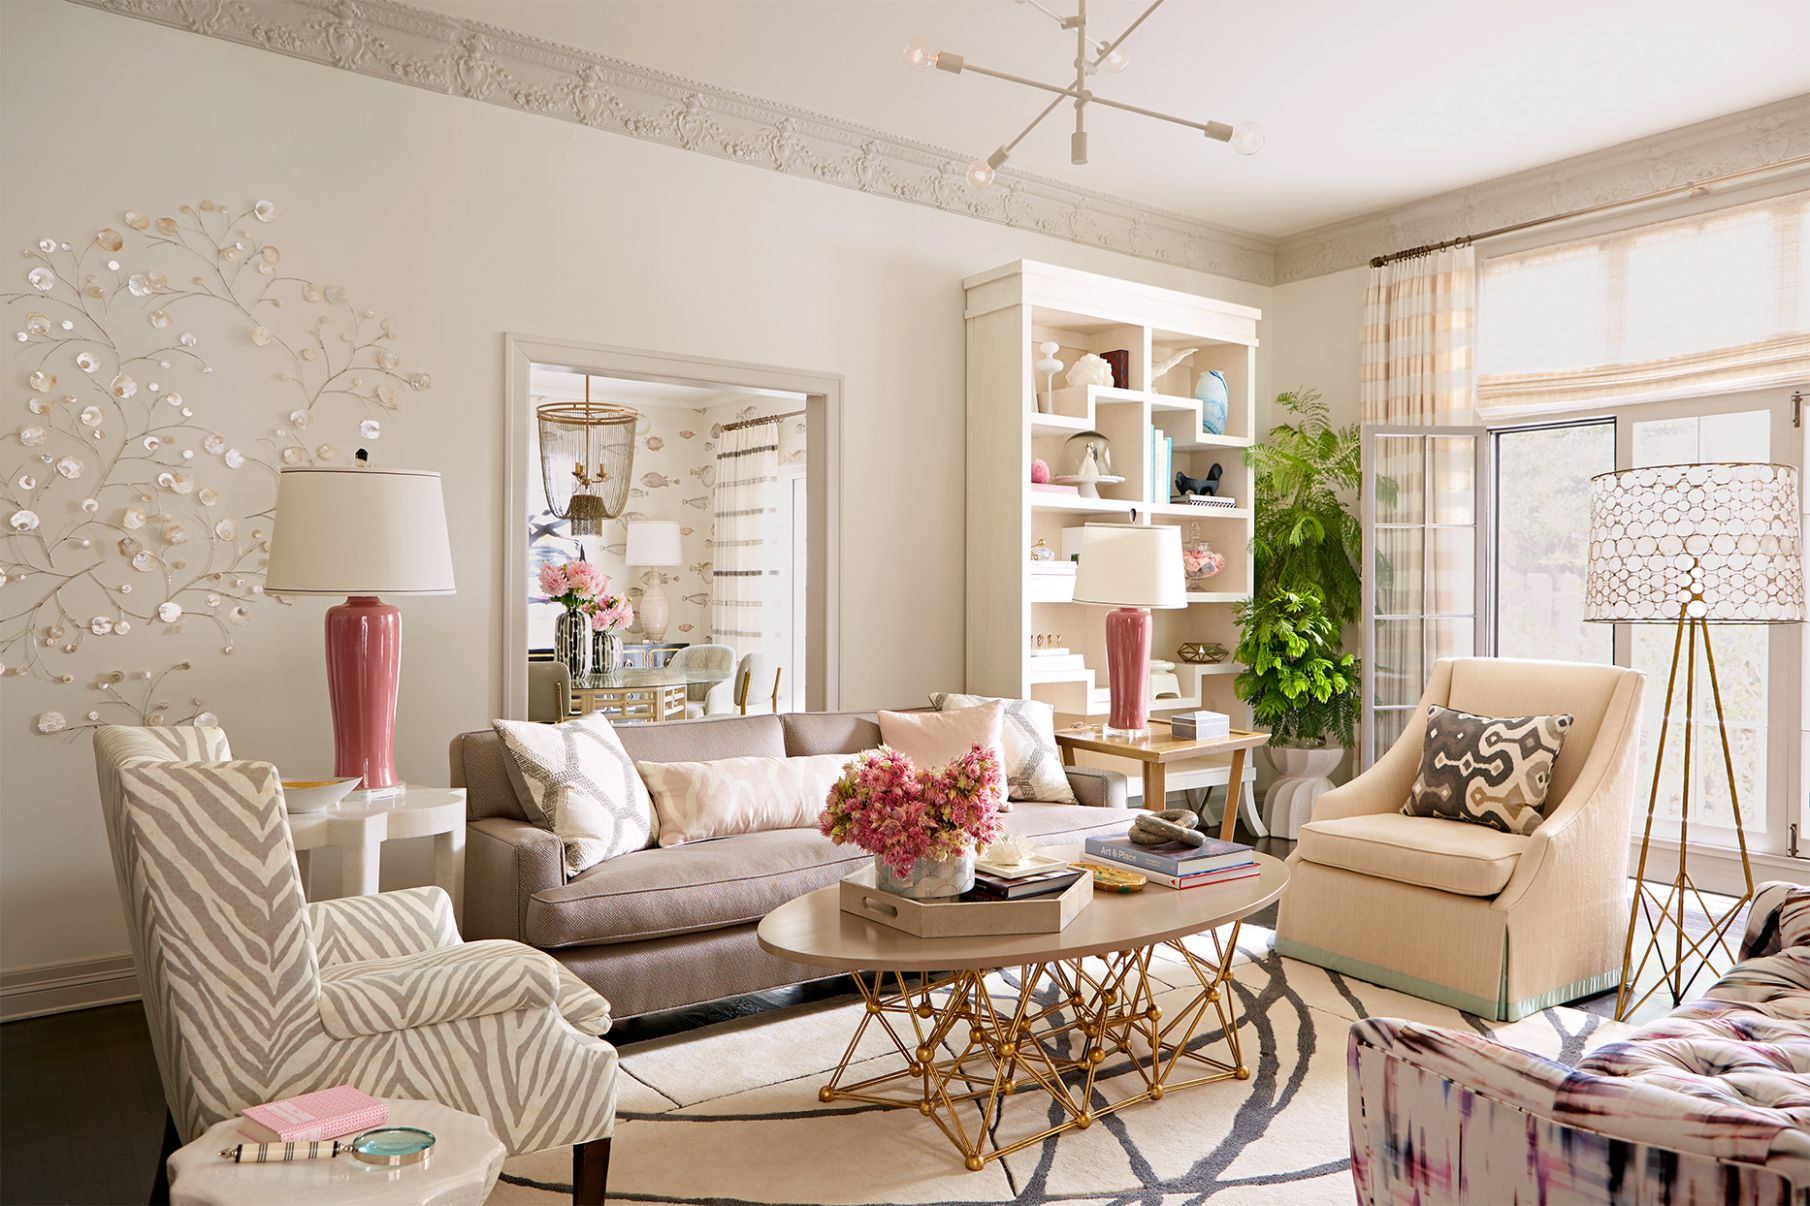 Our Best Neutral Living Room Color Ideas | Better Homes & Gardens - living room ideas tan couch